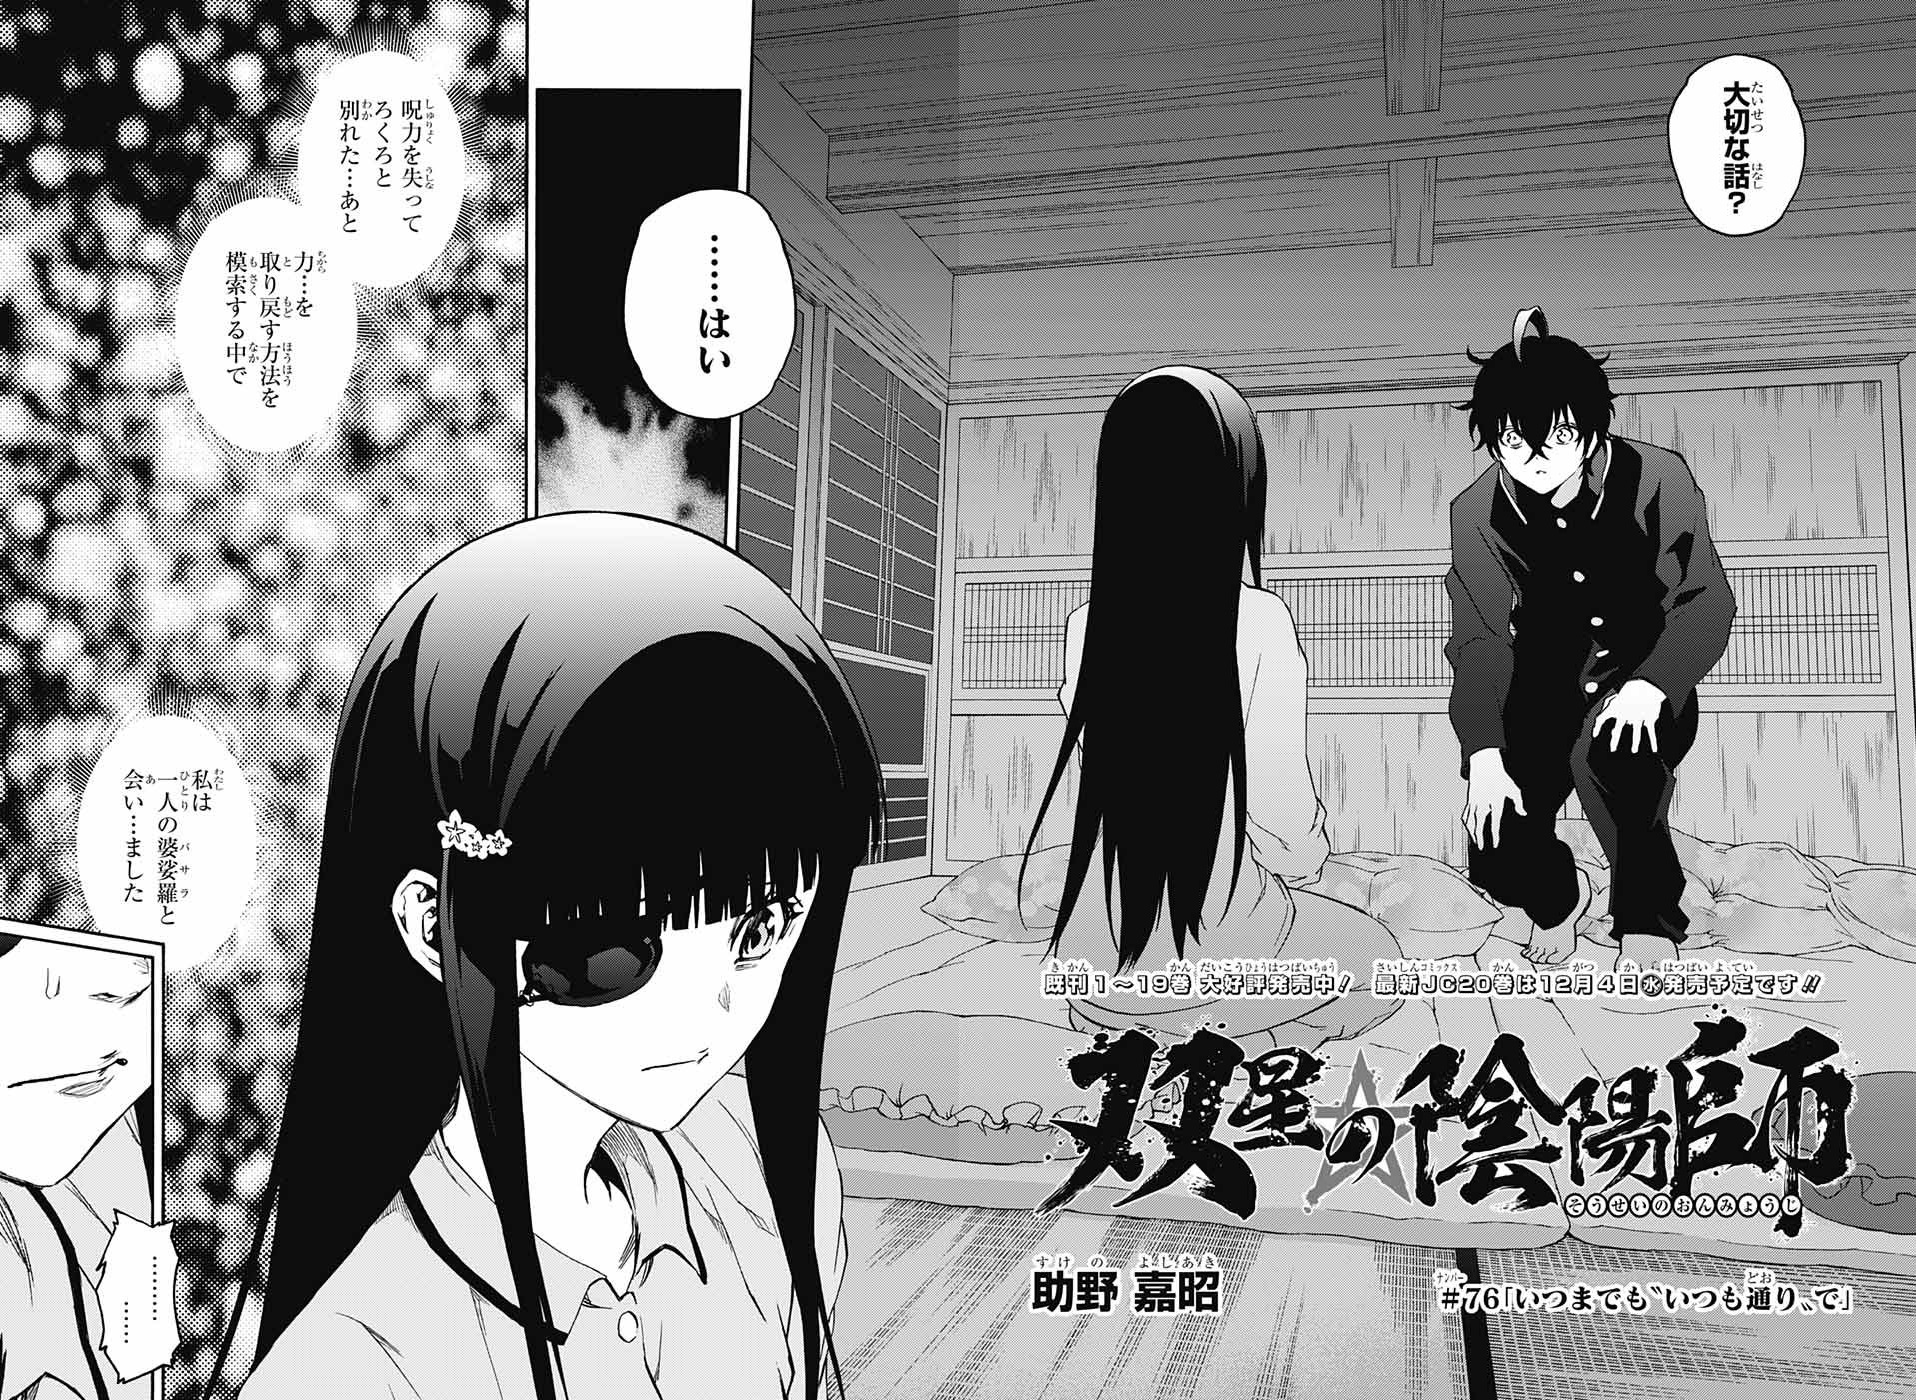 Twin Star Exorcists Chapter 94 /93 Spoilers, Release Date, Raw Scans